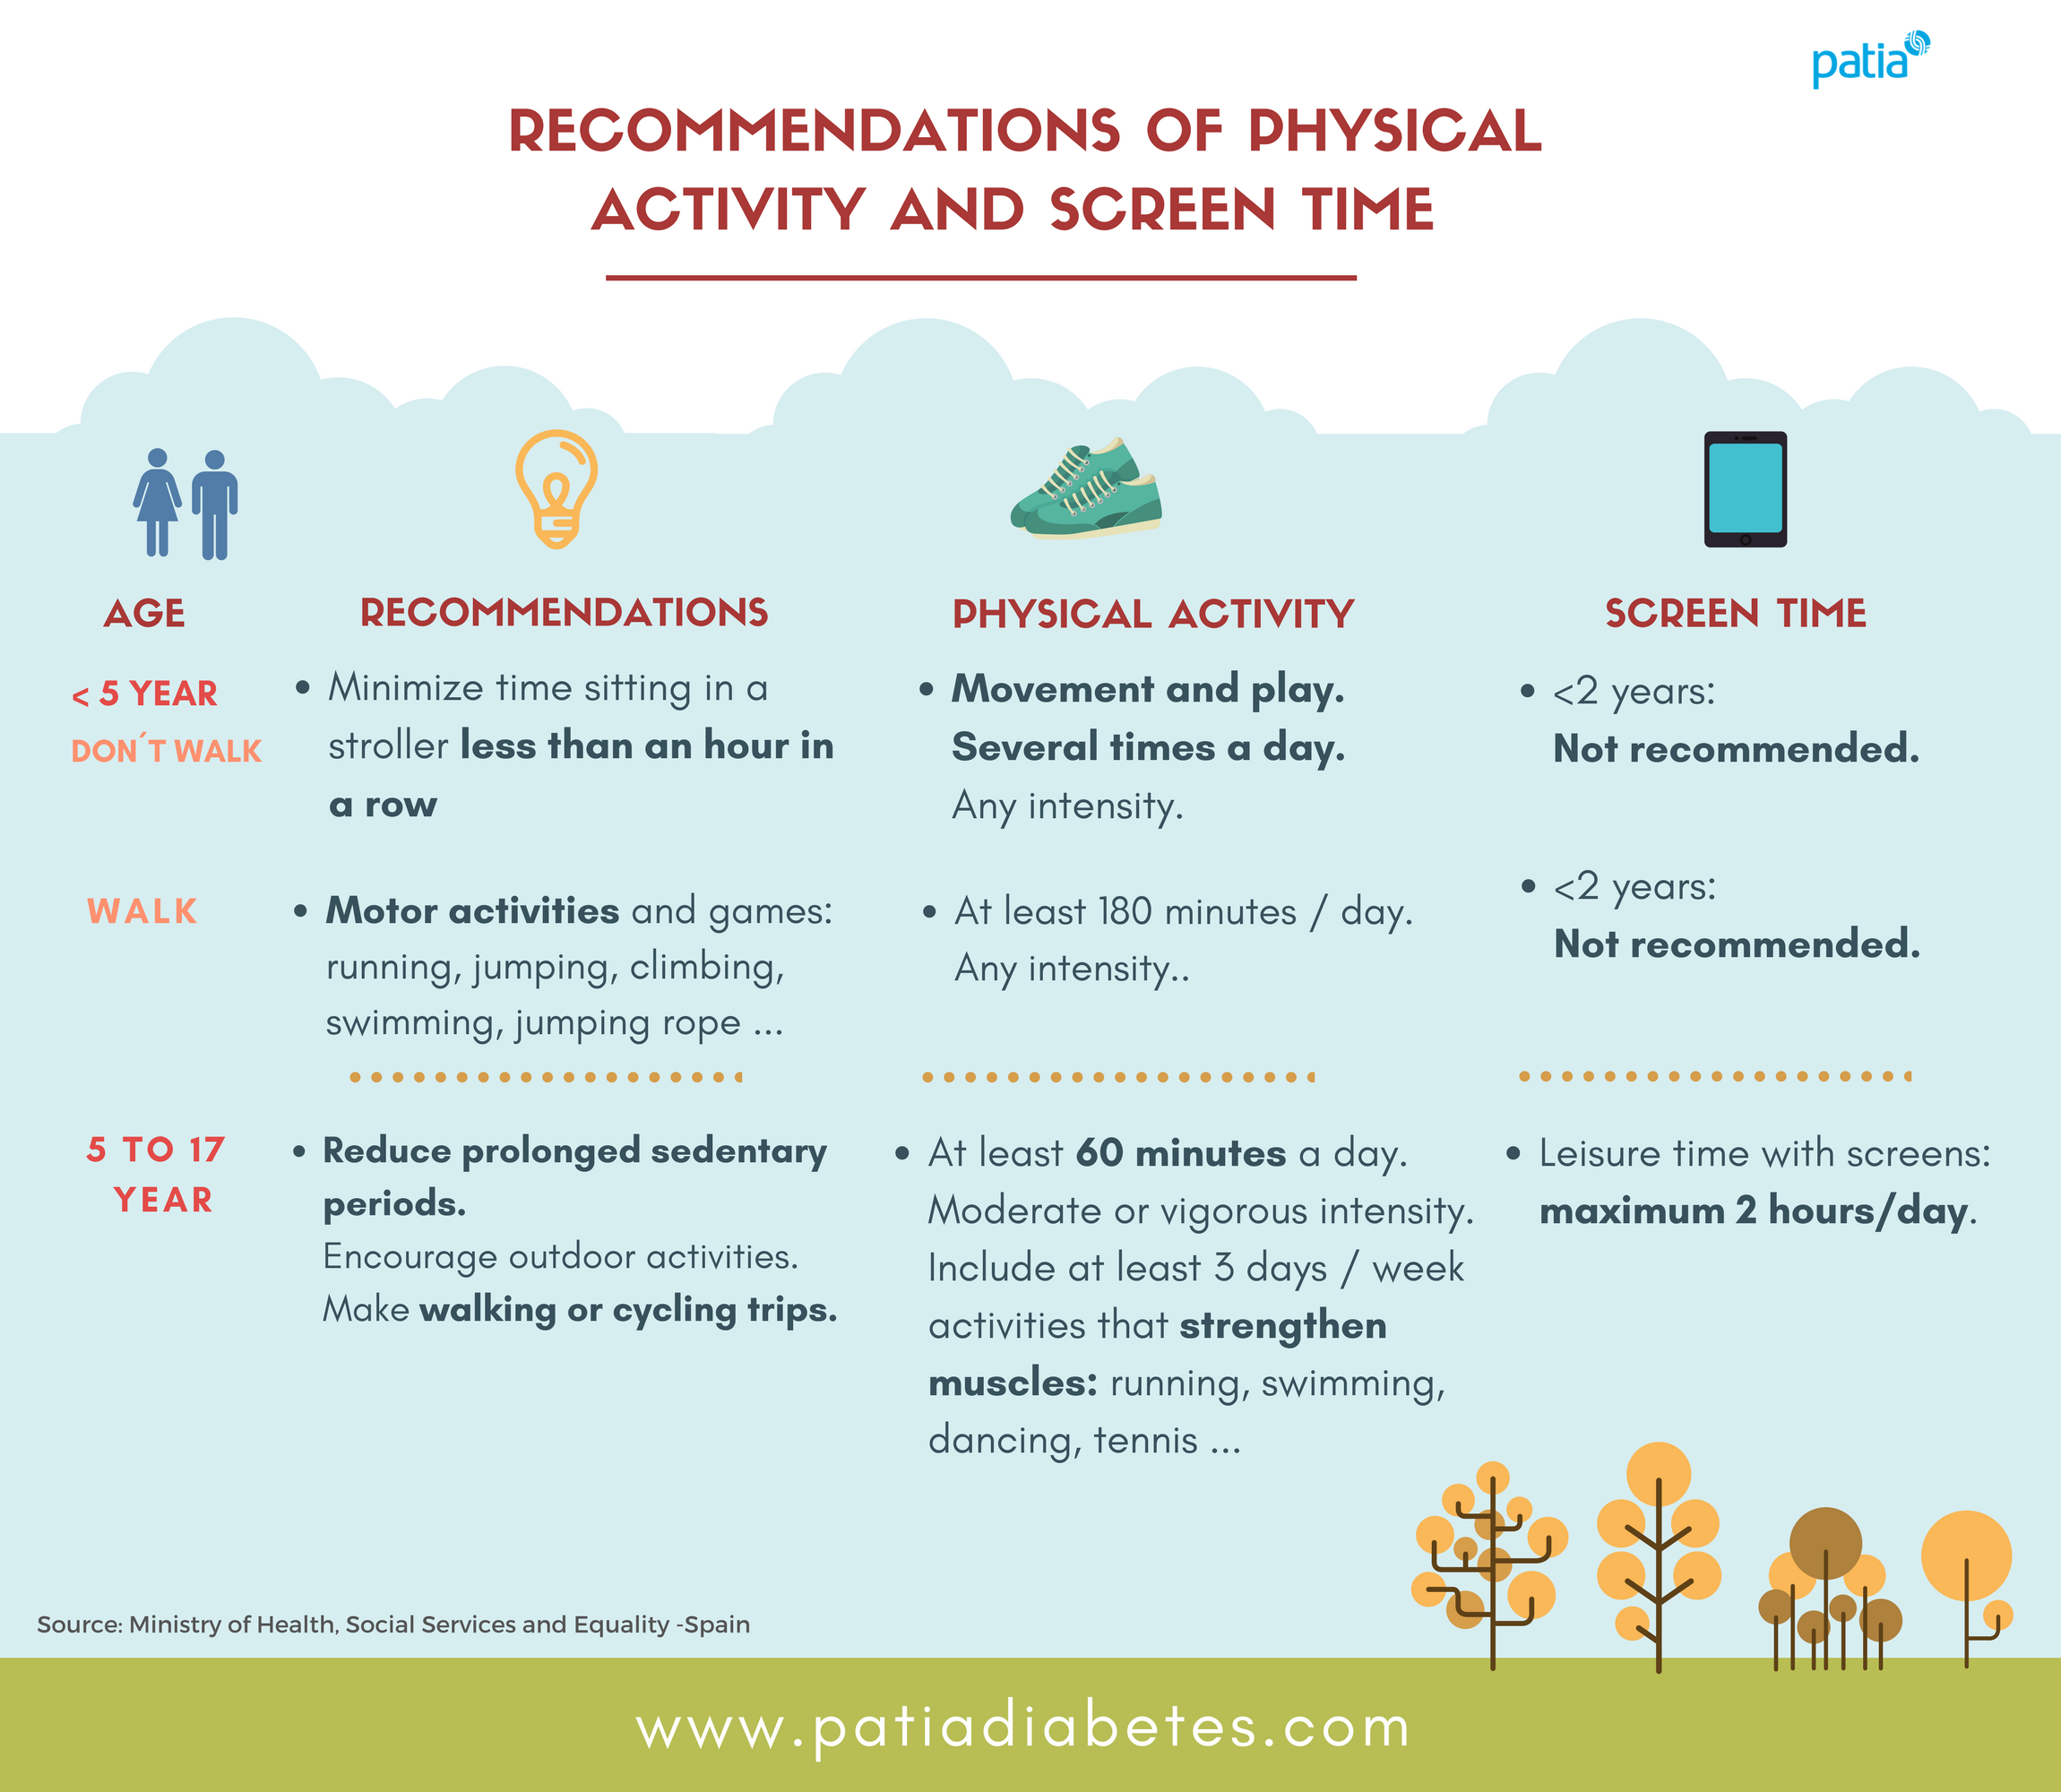 Physical activity sedentarism childhood obesity